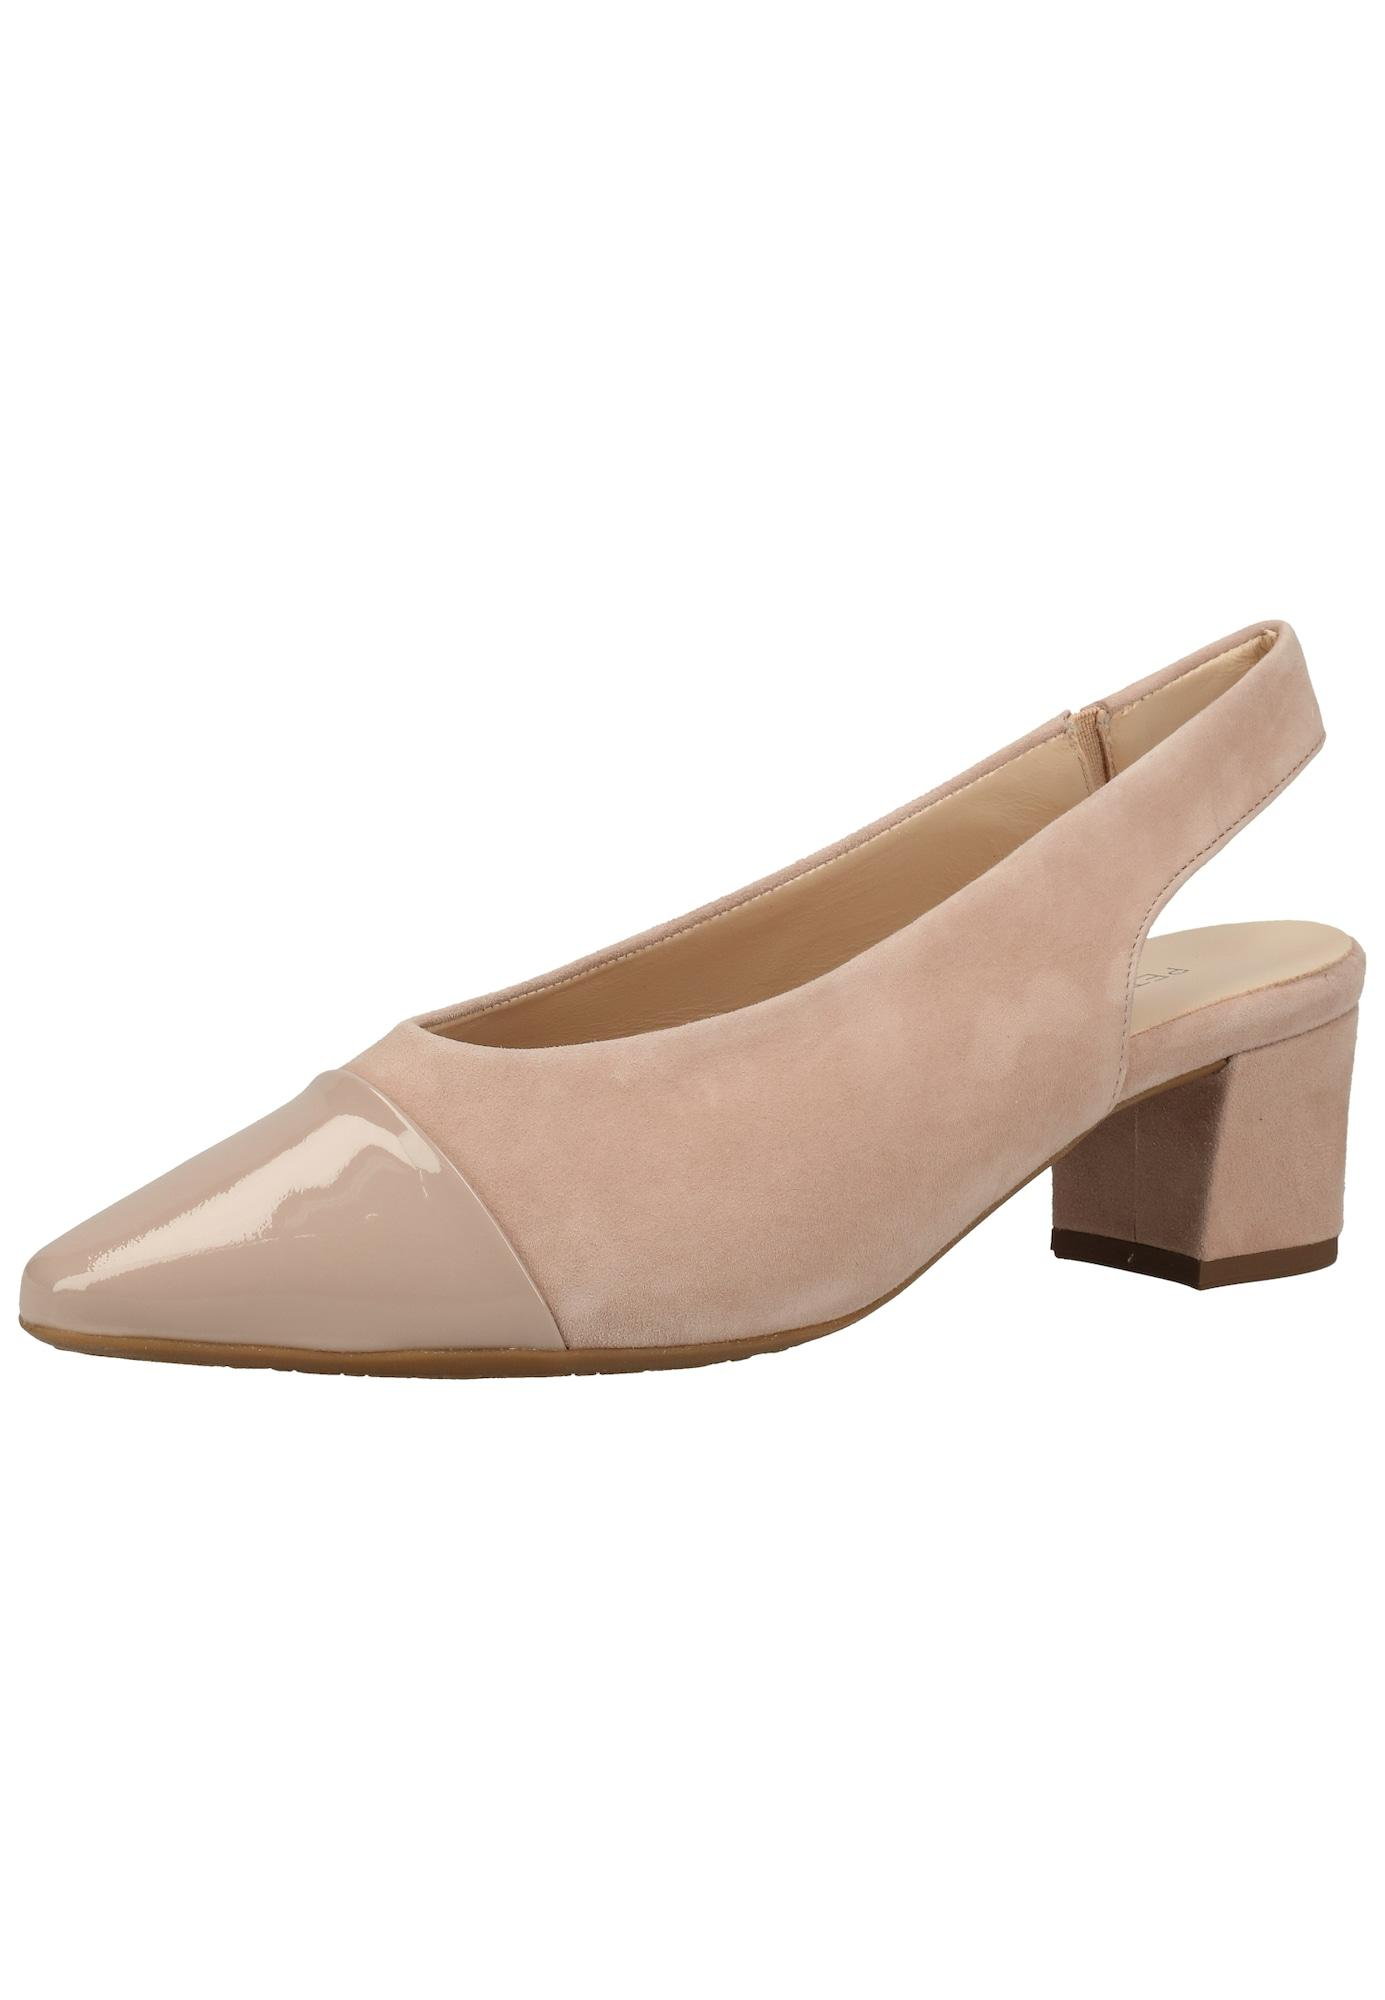 PETER KAISER Pumps creme